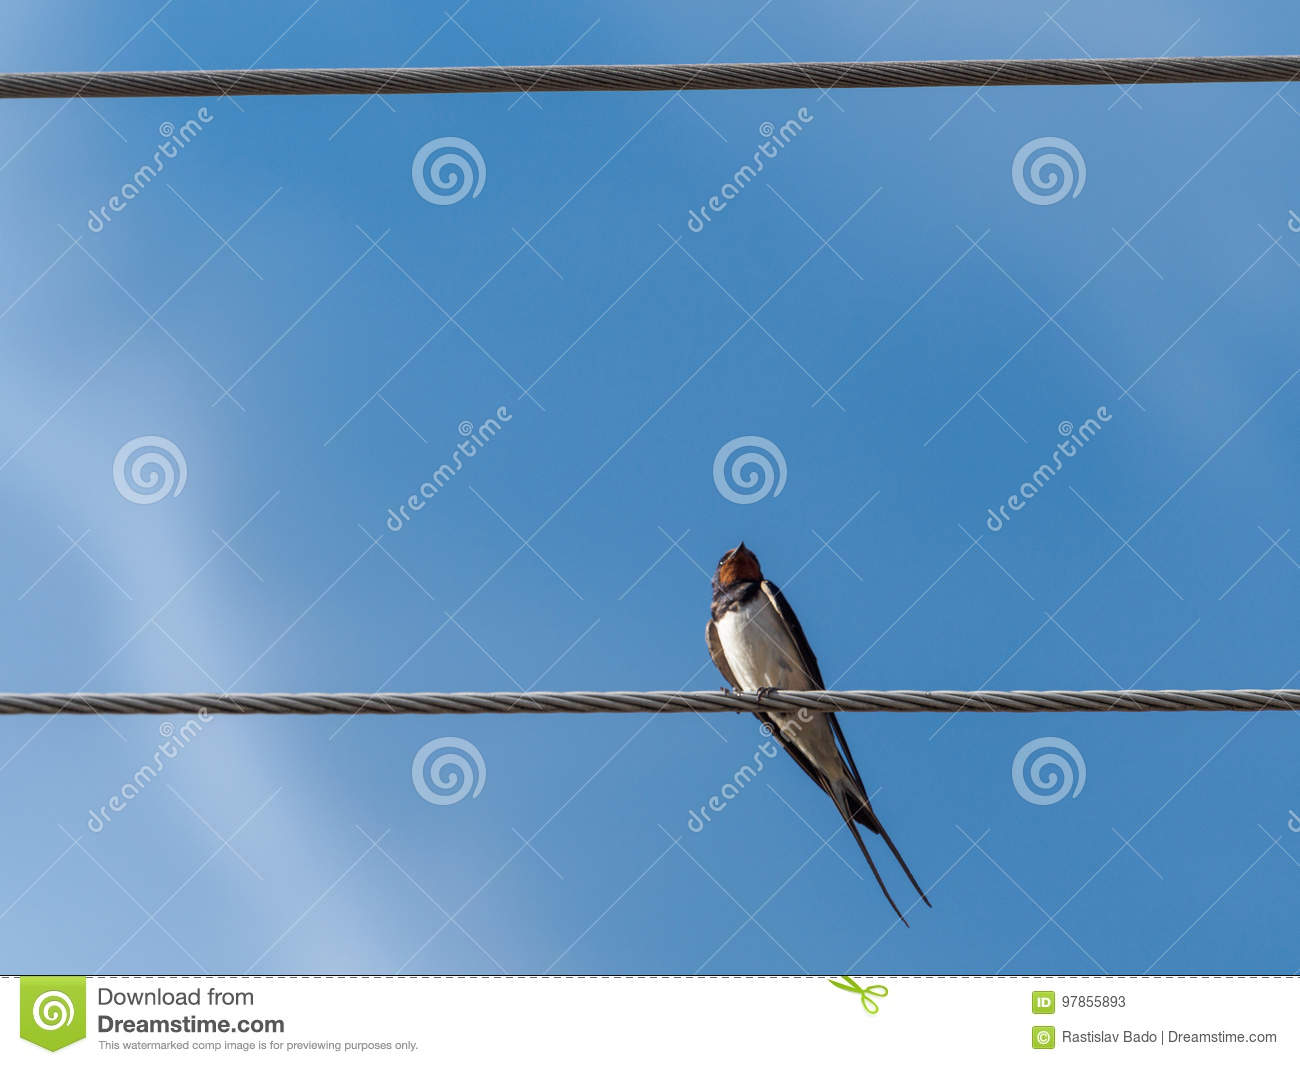 Swallow on the wire 2 stock image. Image of care, place - 97855893